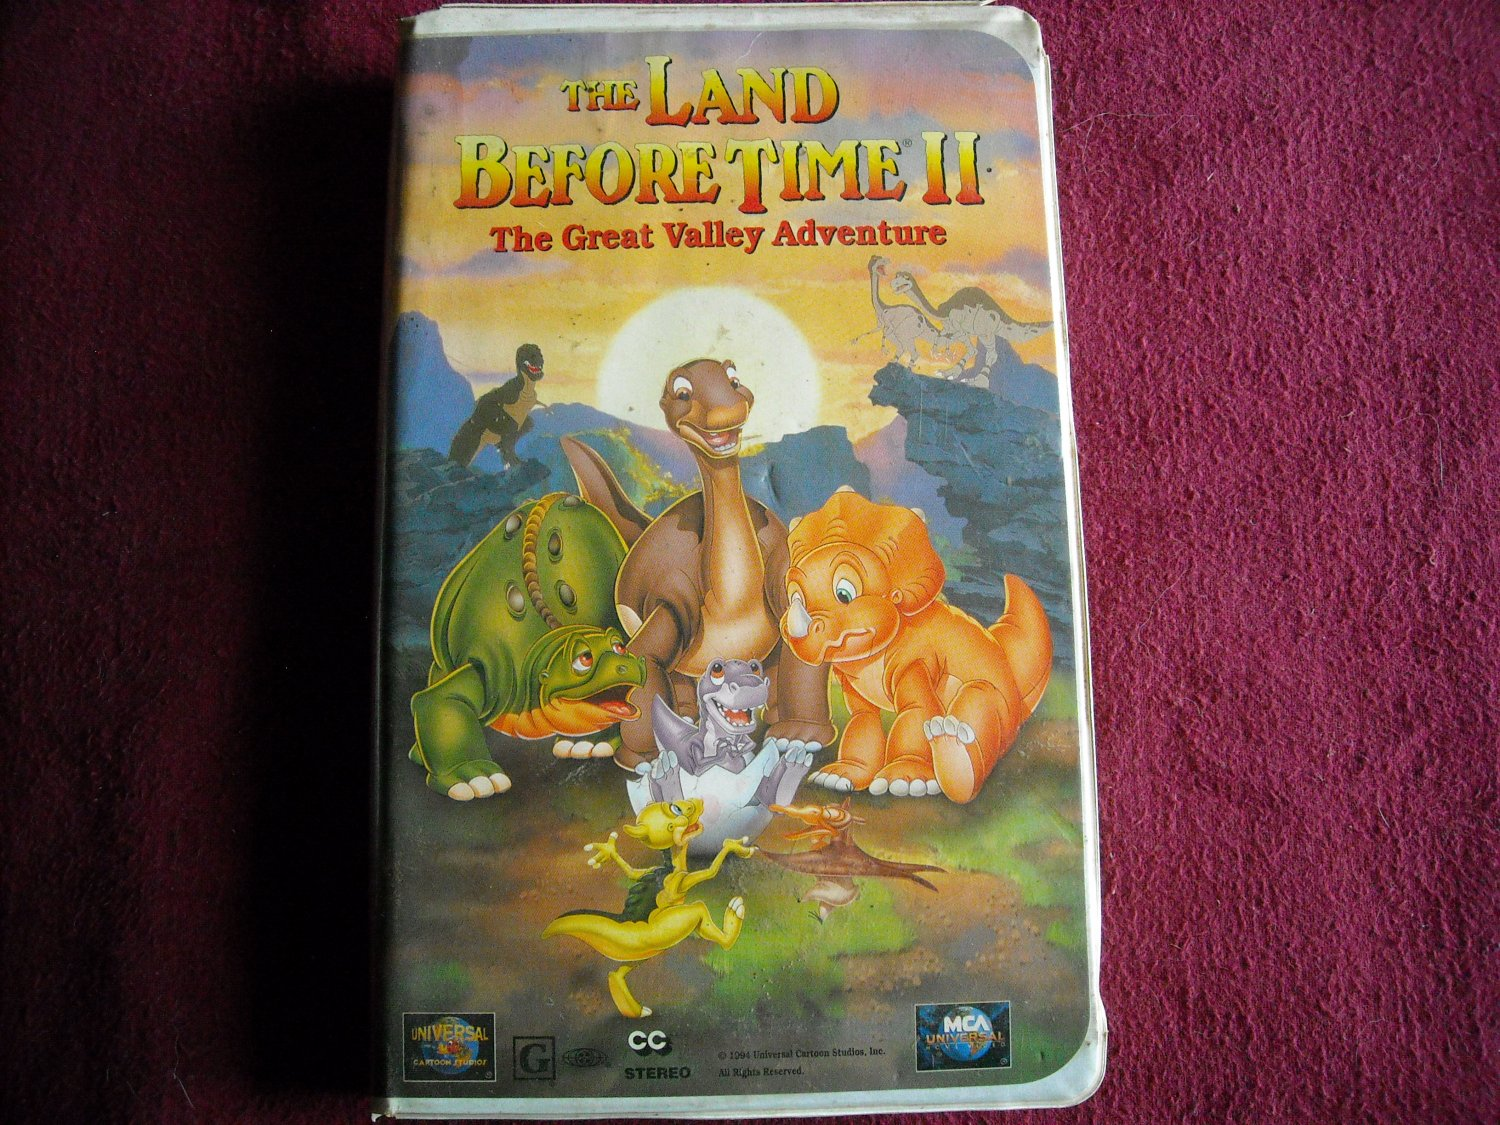 The Land Before Time II: The Great Valley Adventure (VHS) Animated